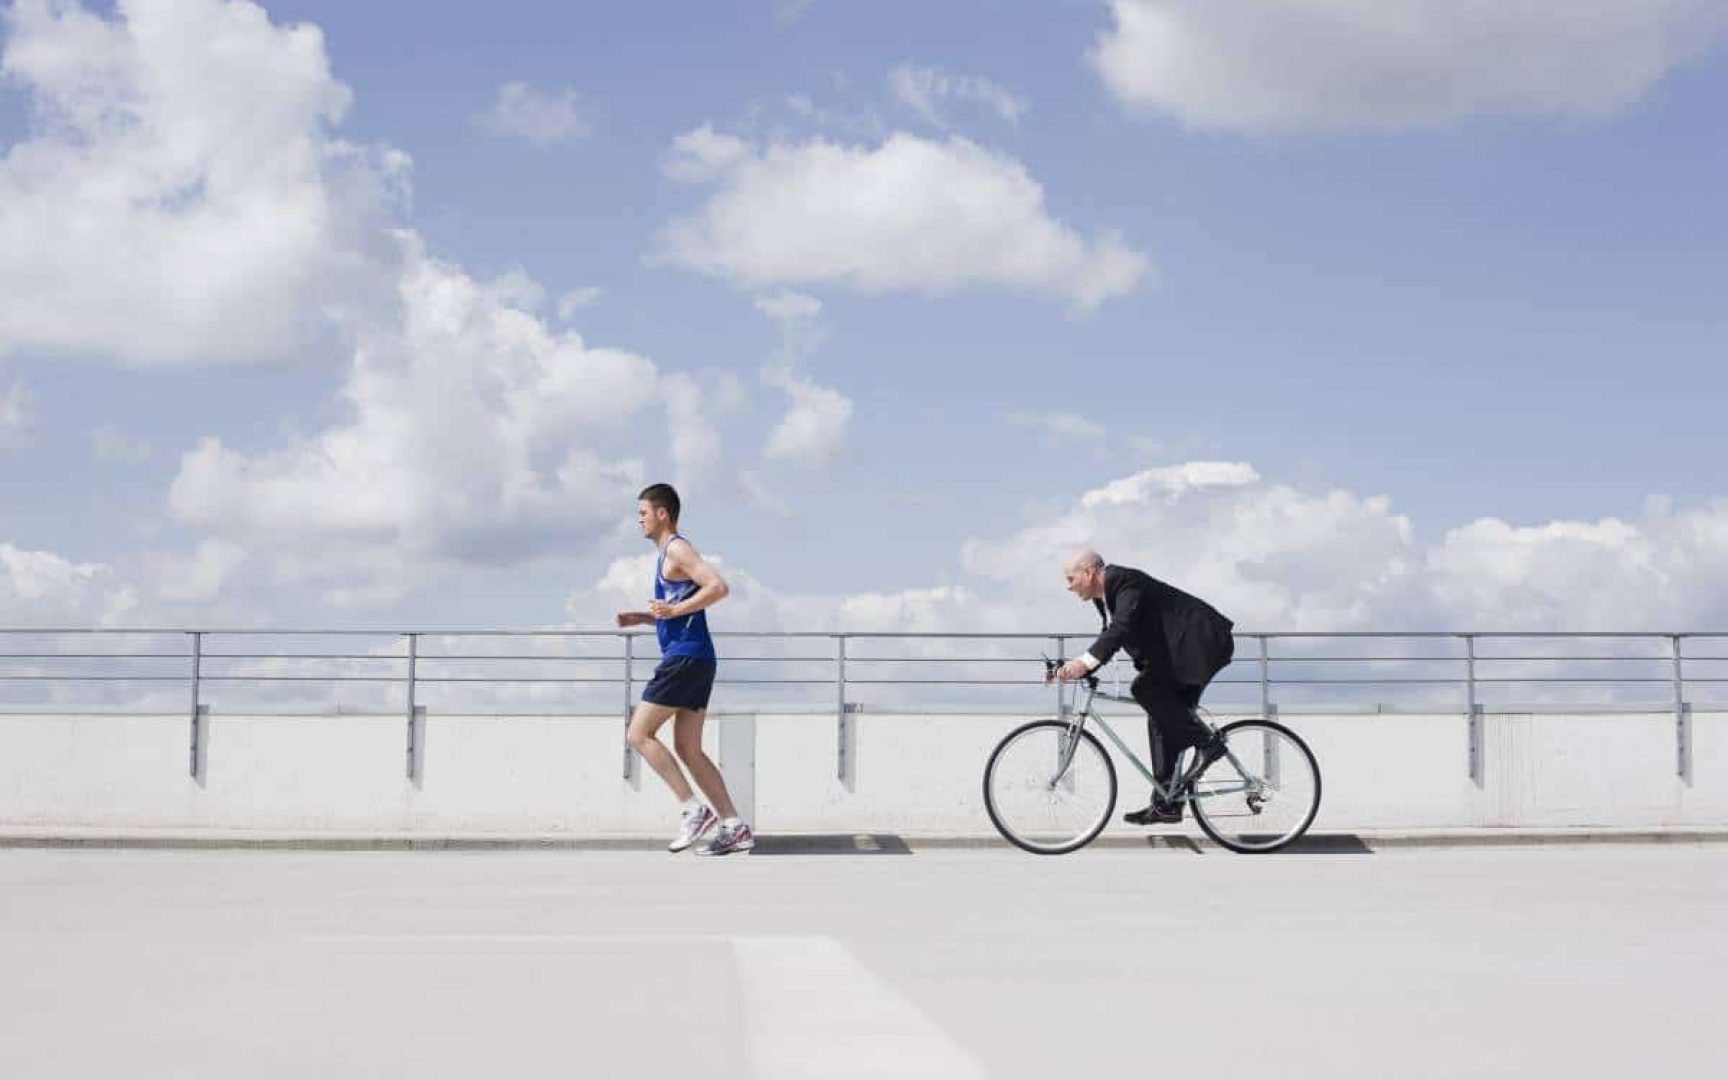 Man running followed by a man on a bike